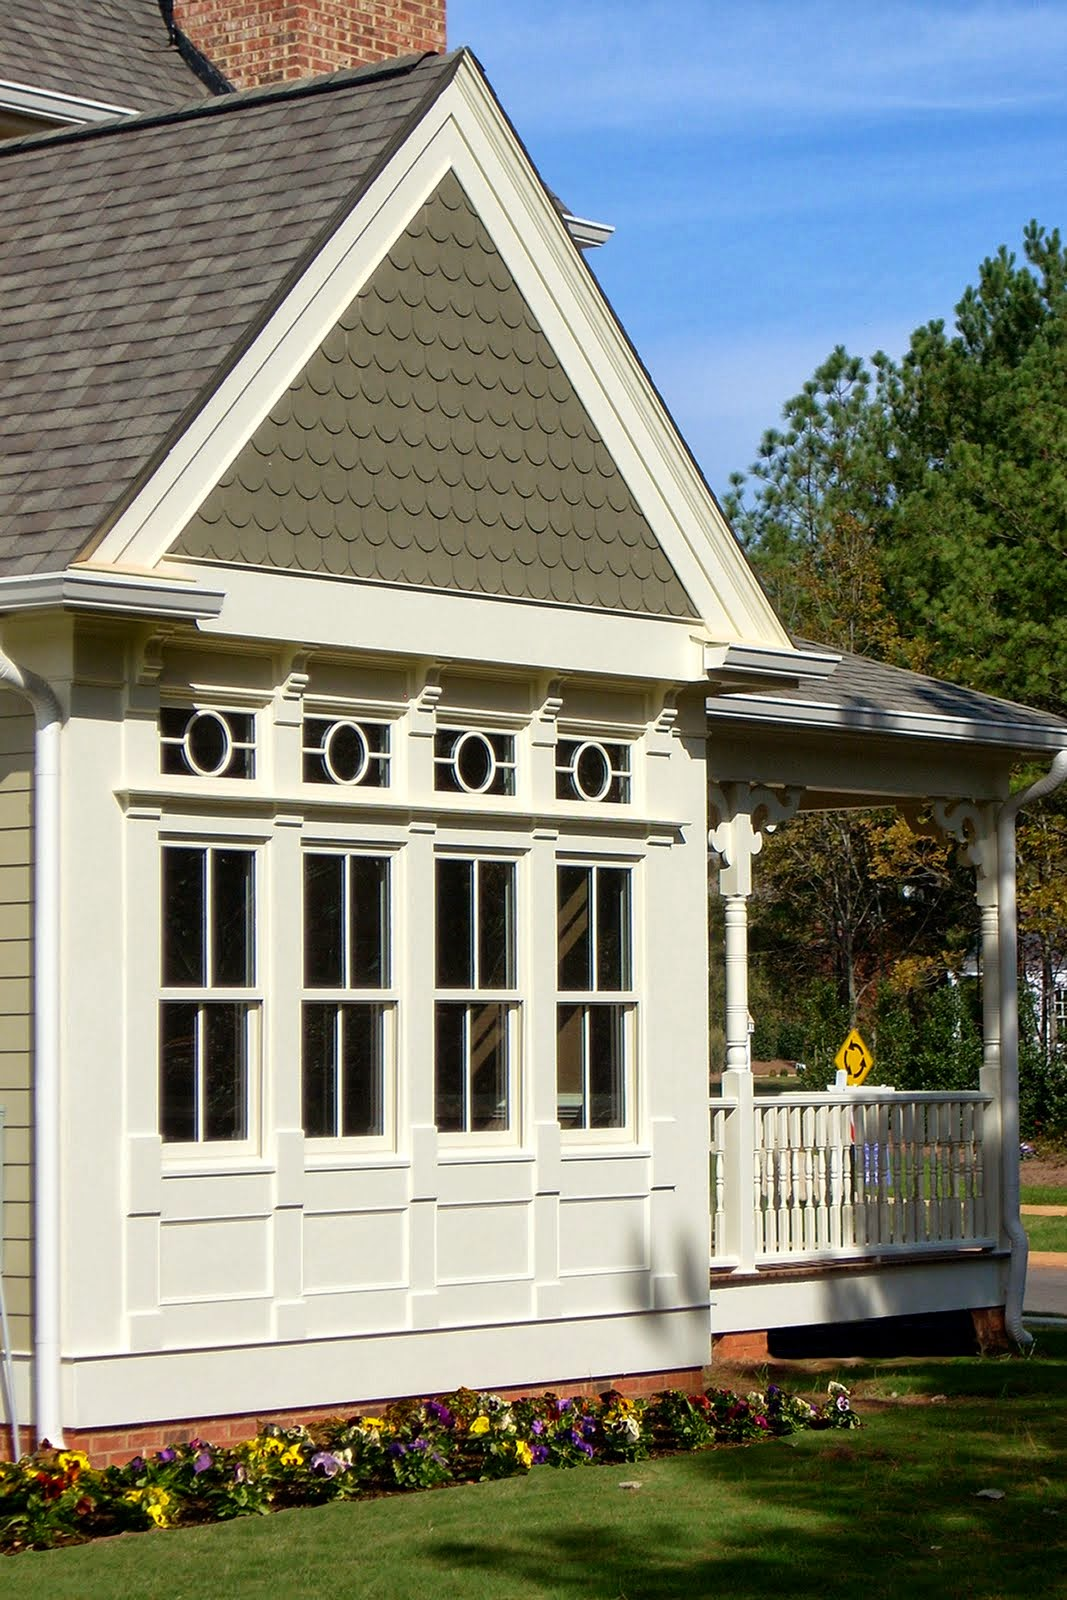 LUXE Homes Pro 039 house detail.jpg